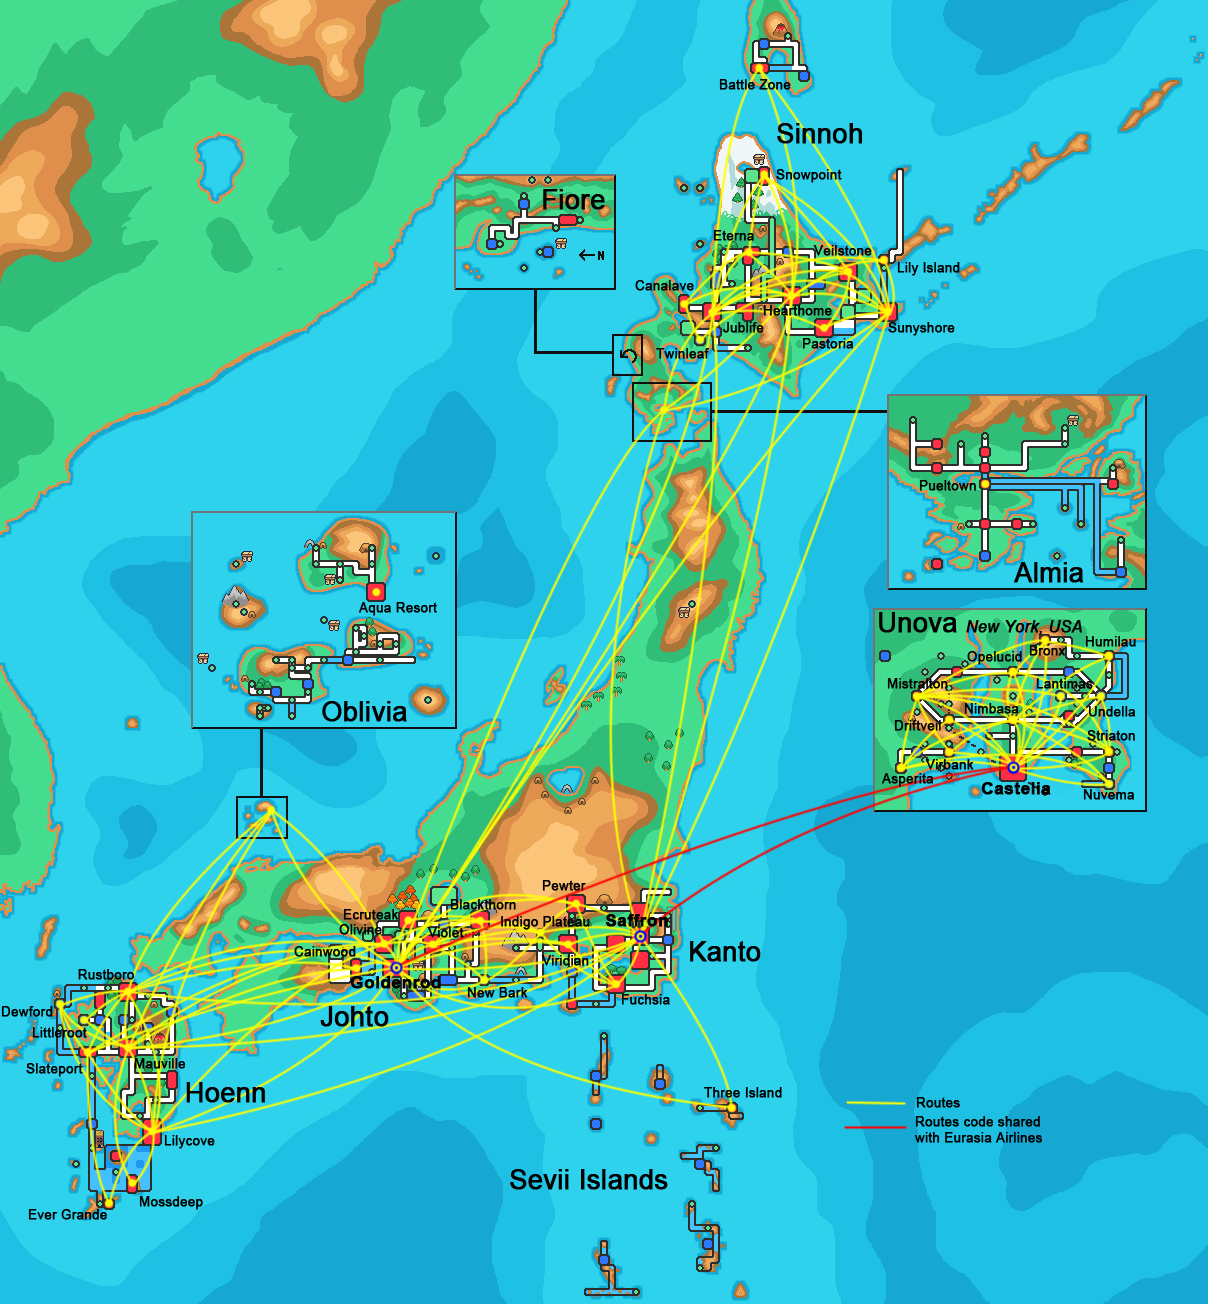 Pokemon Airlines Route Map 2013 By Maxcheng95 On Deviantart